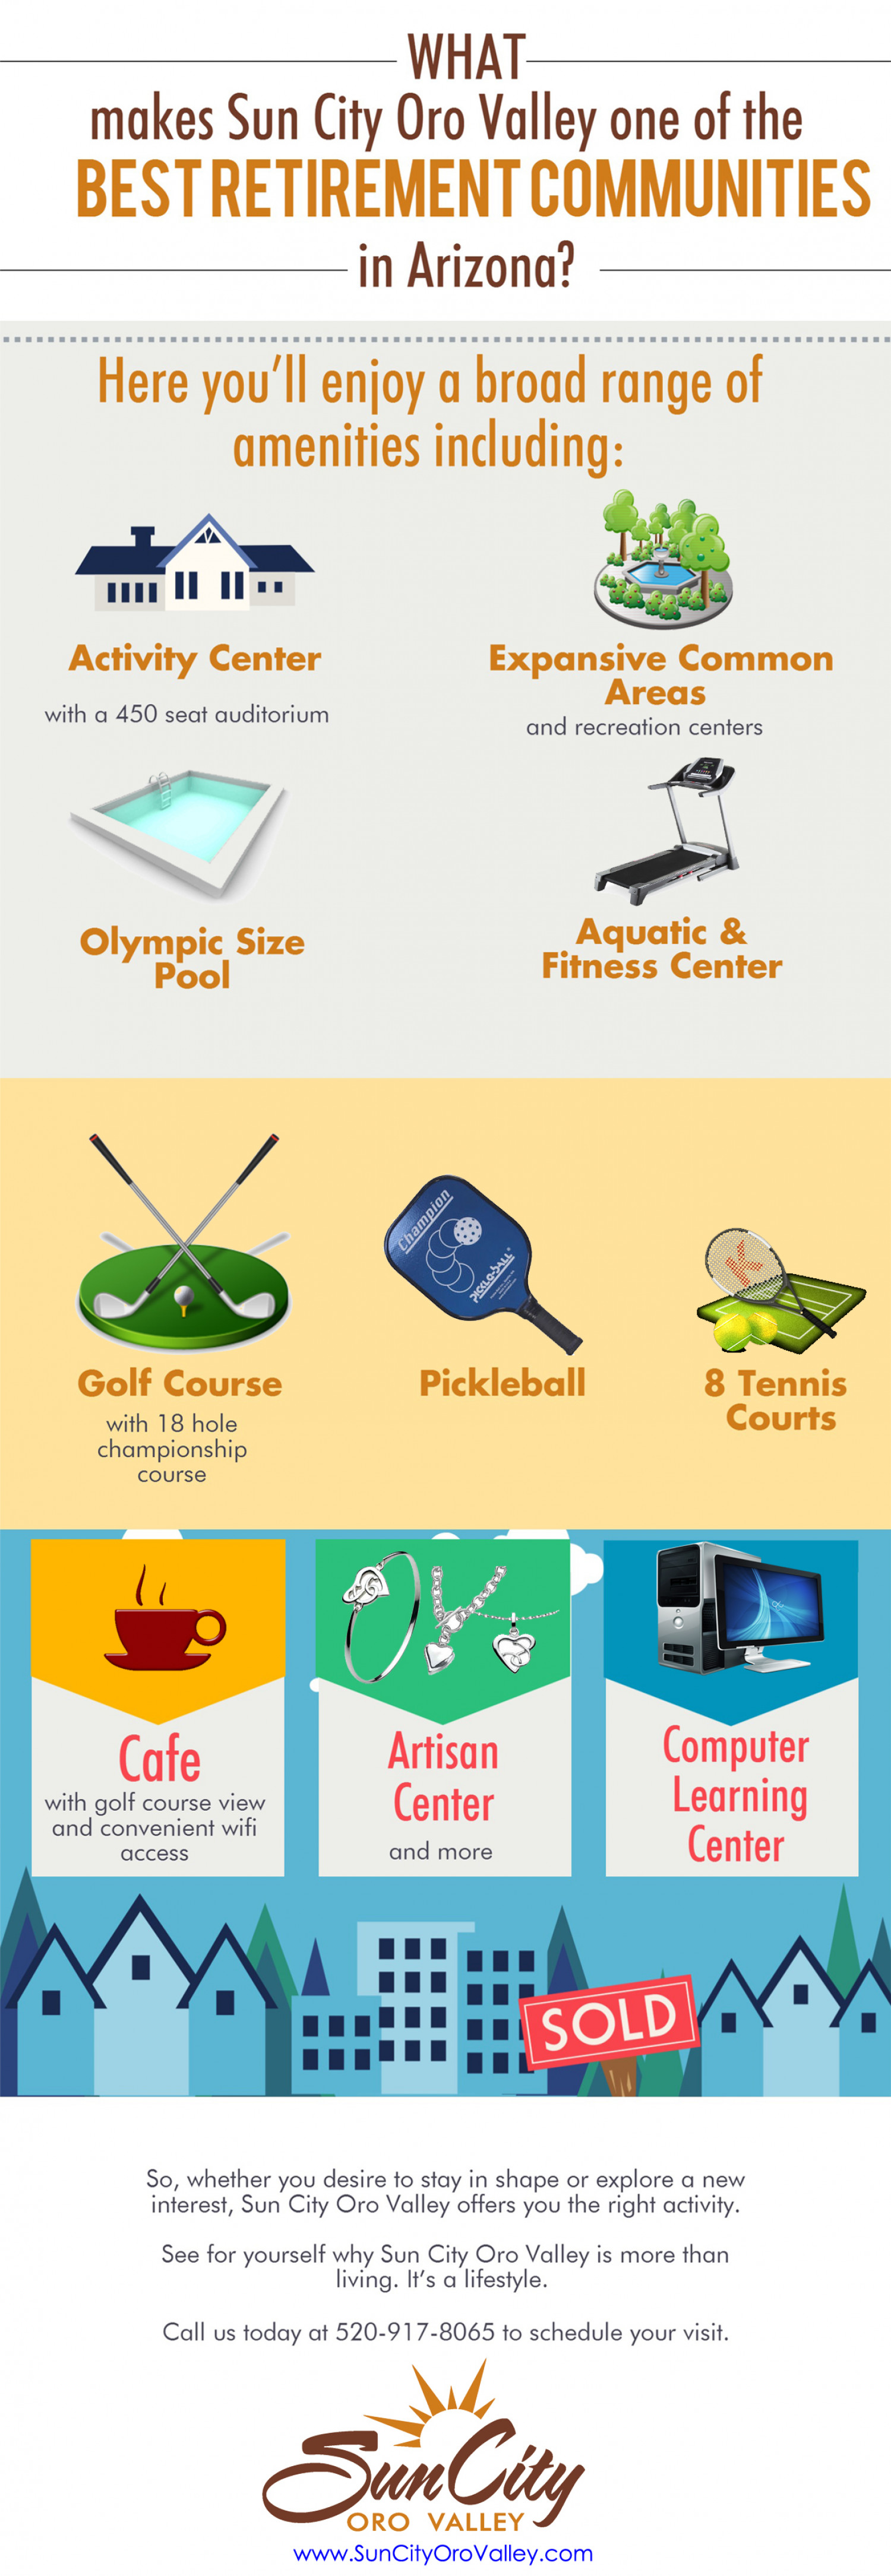 What Makes Sun City Oro Valley one of the Best Retirement Communities in Arizona? Infographic